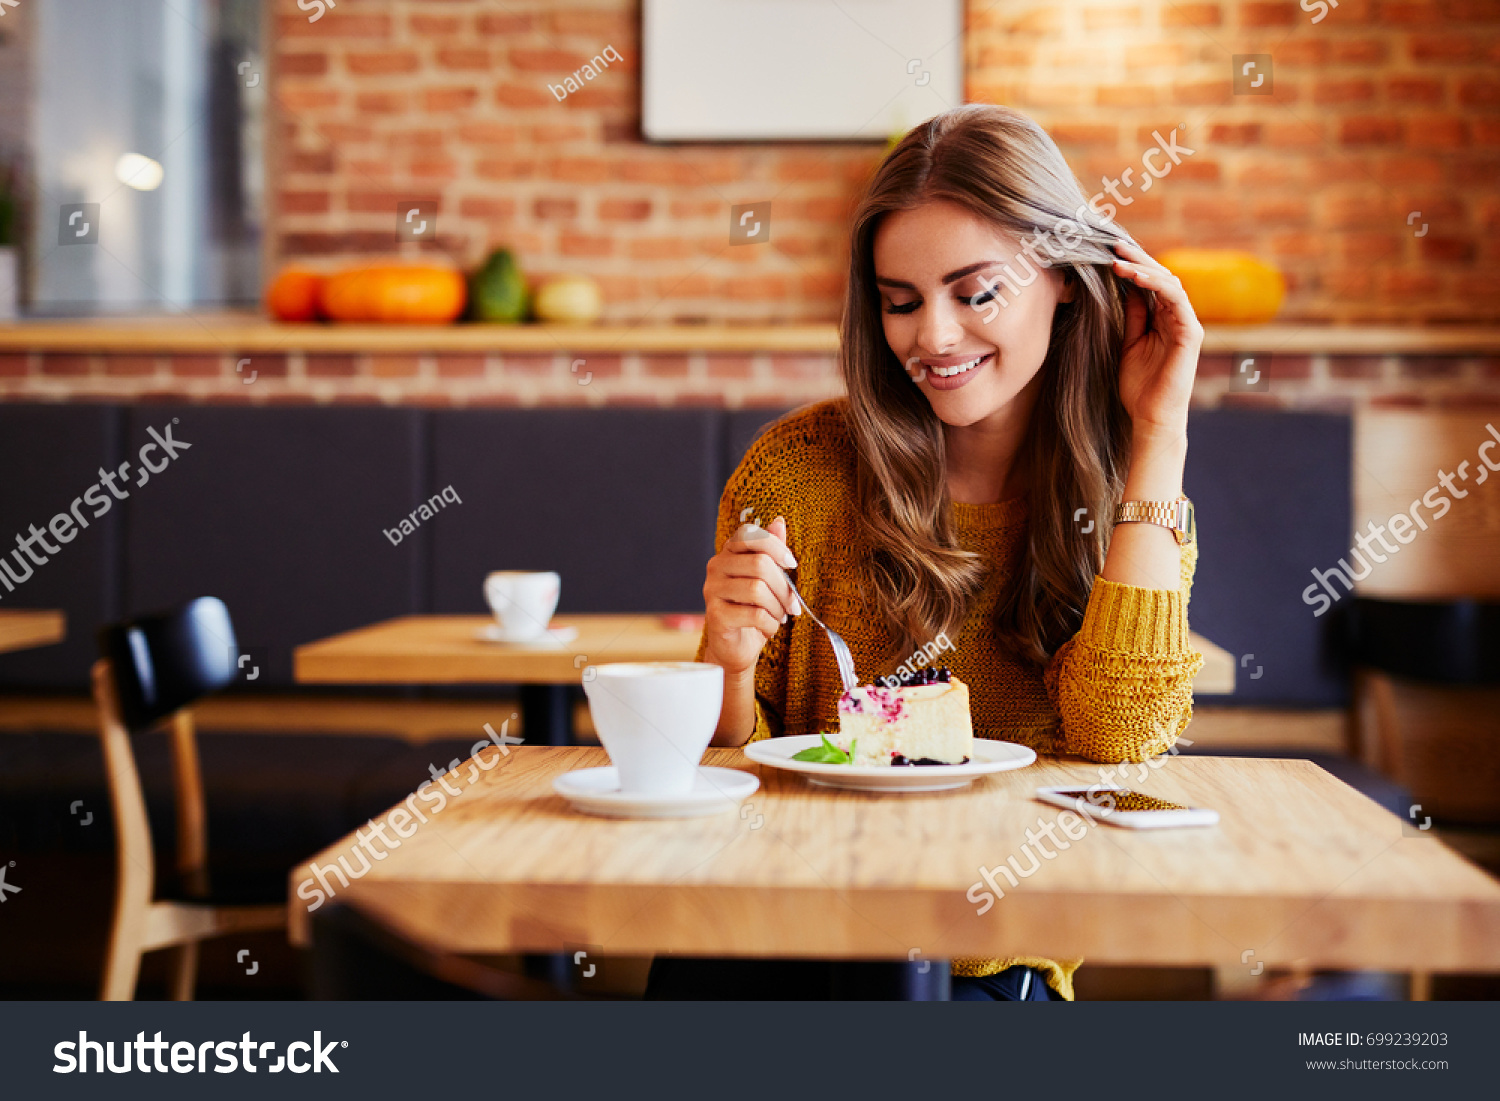 Gorgeous smiling young woman eating cake and drinking coffee at a cafeteria #699239203